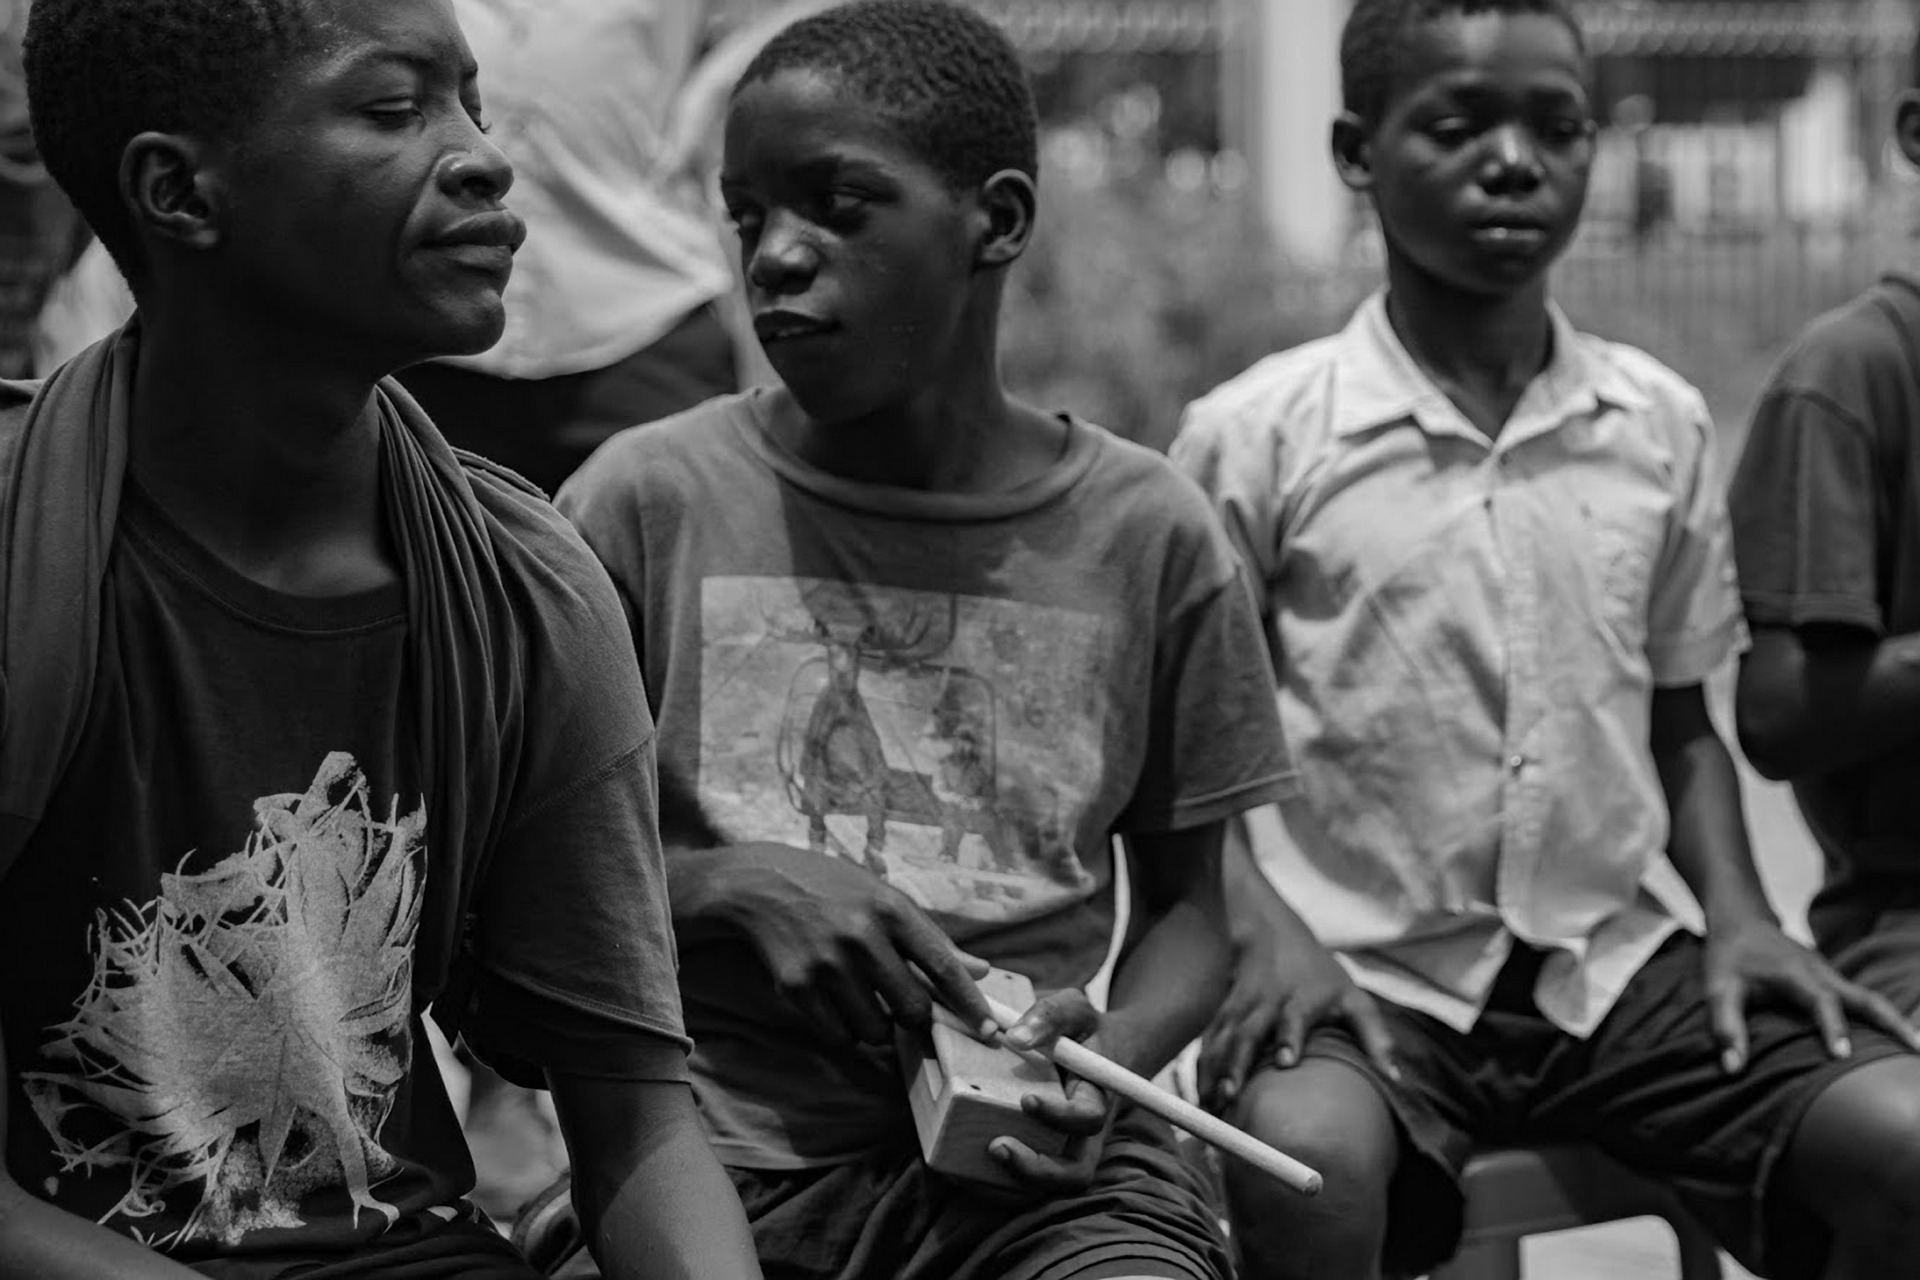 Strategic Philanthropy Project of the Menomadin Foundation in Angola: An Hour of Music, accompanying street children in Luanda.